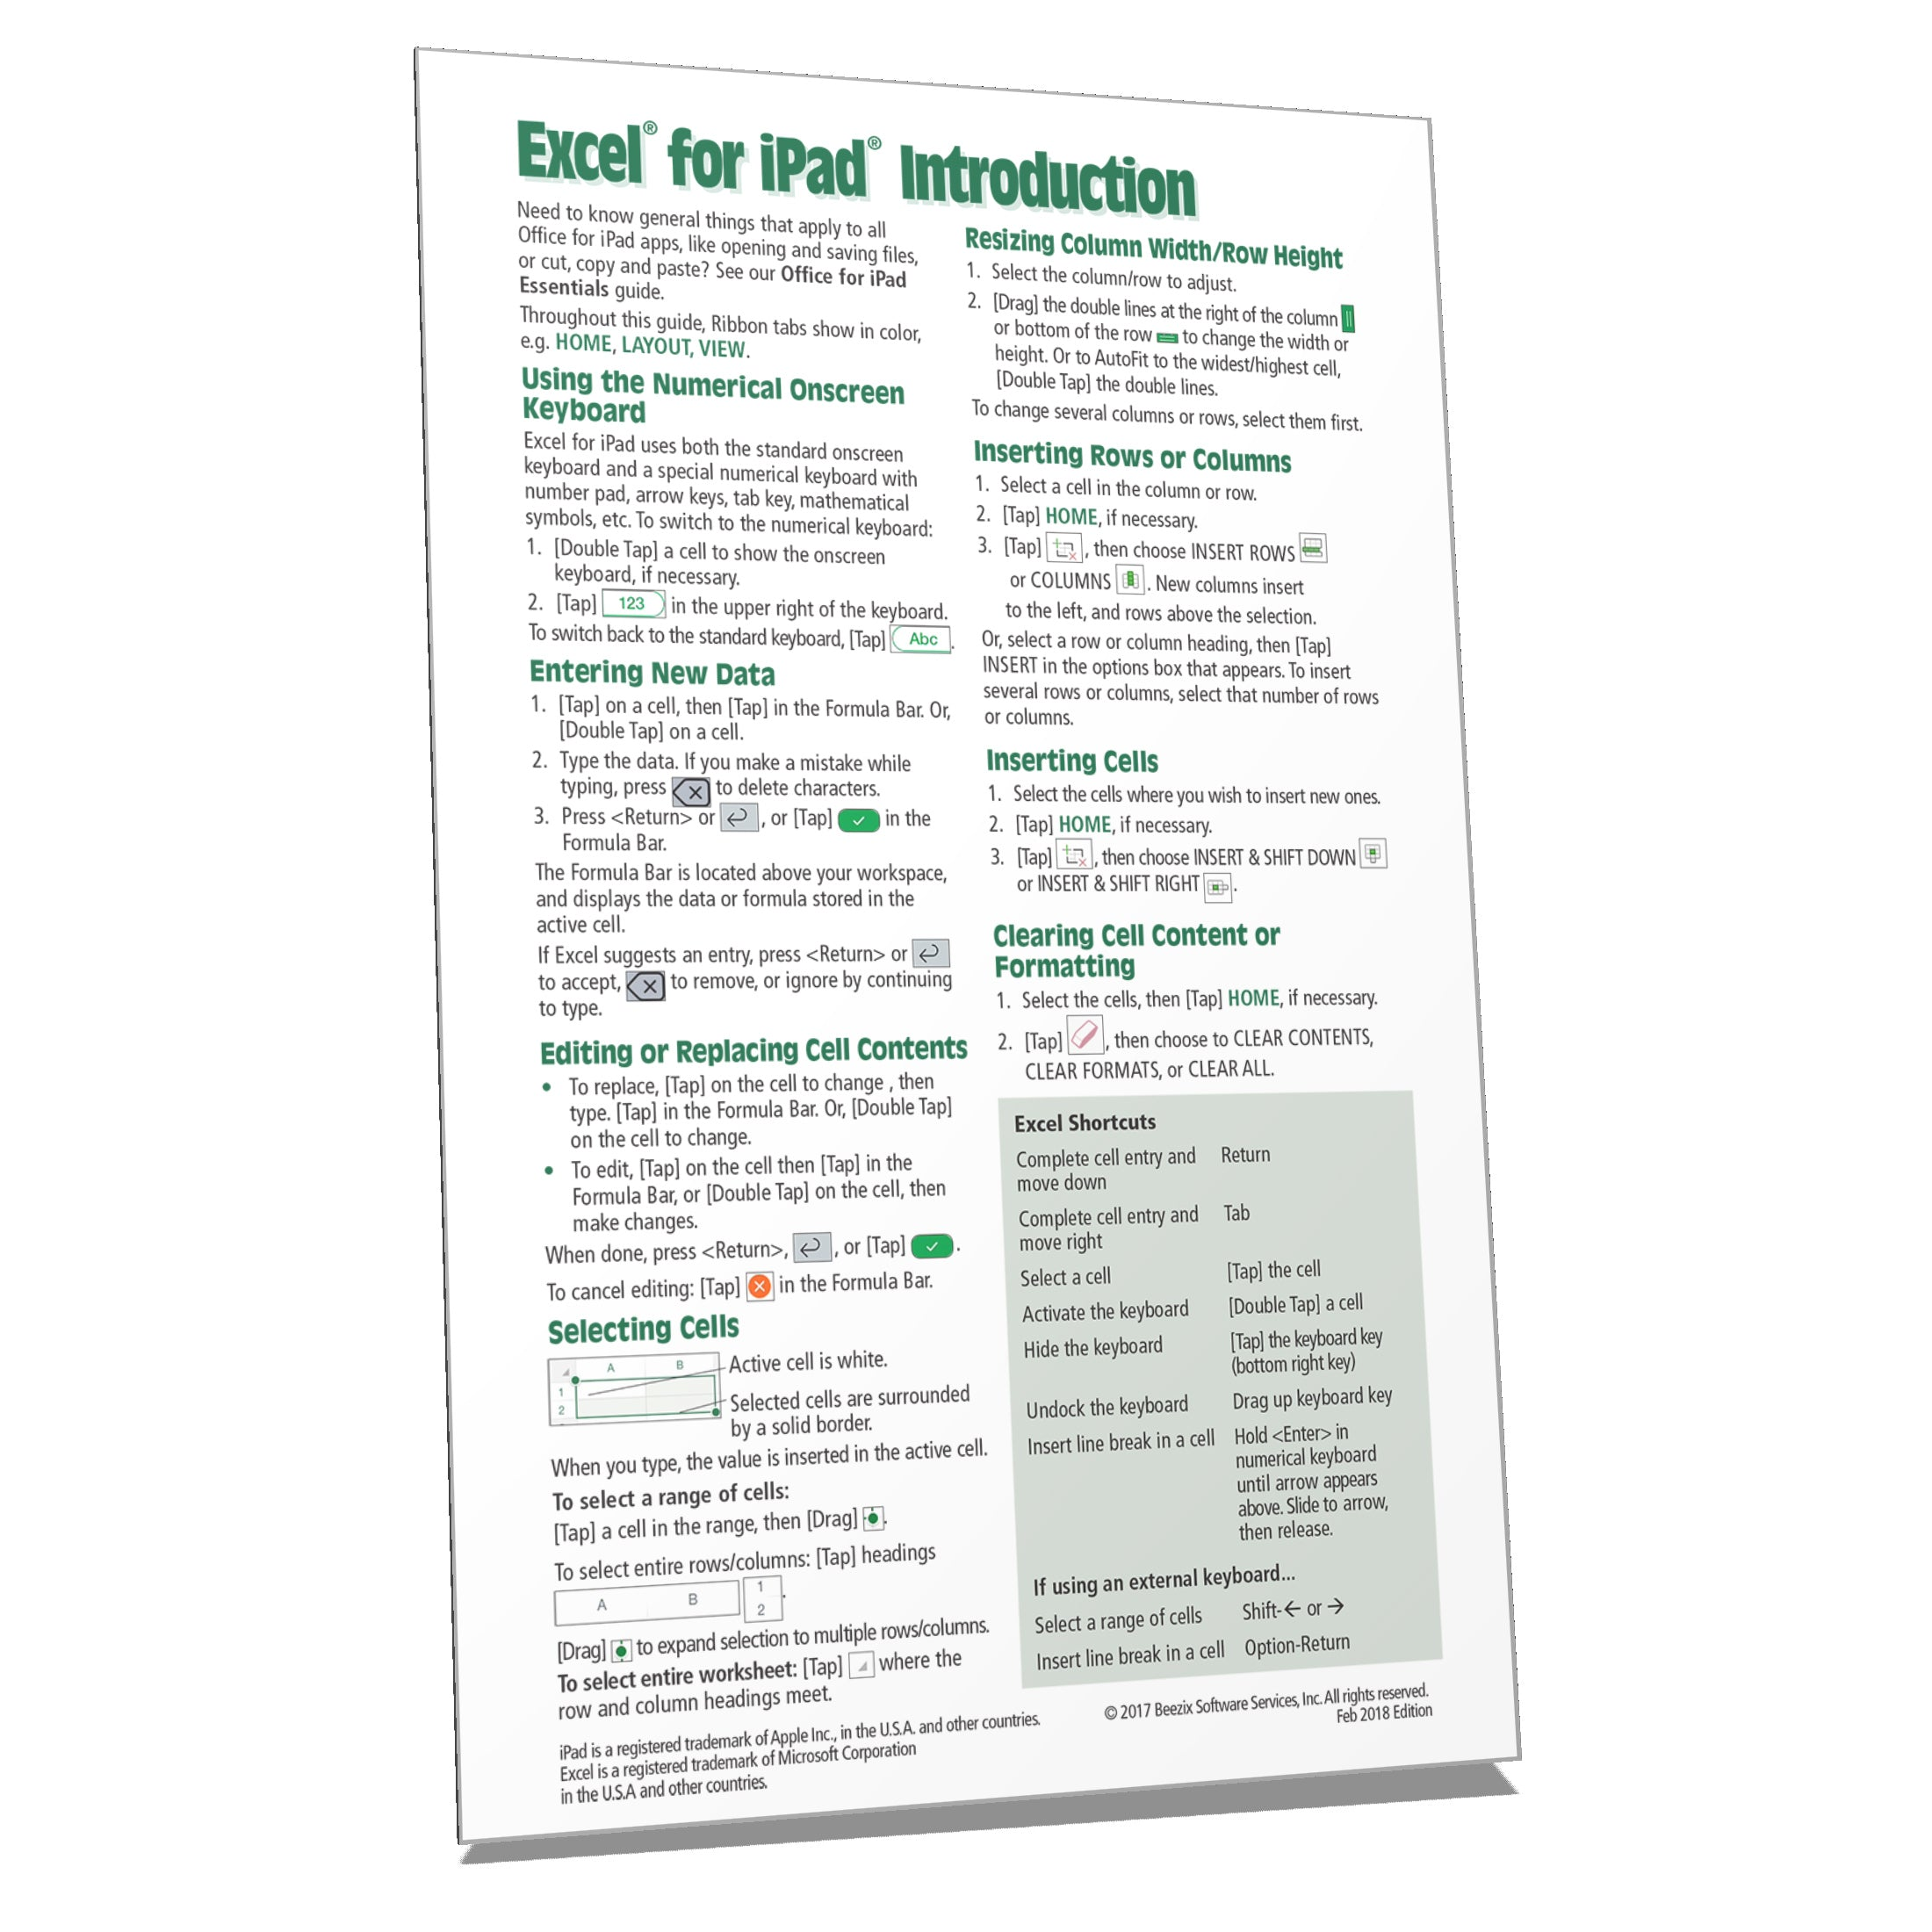 Excel for iPad Quick Reference Training Guide Cheat Sheet